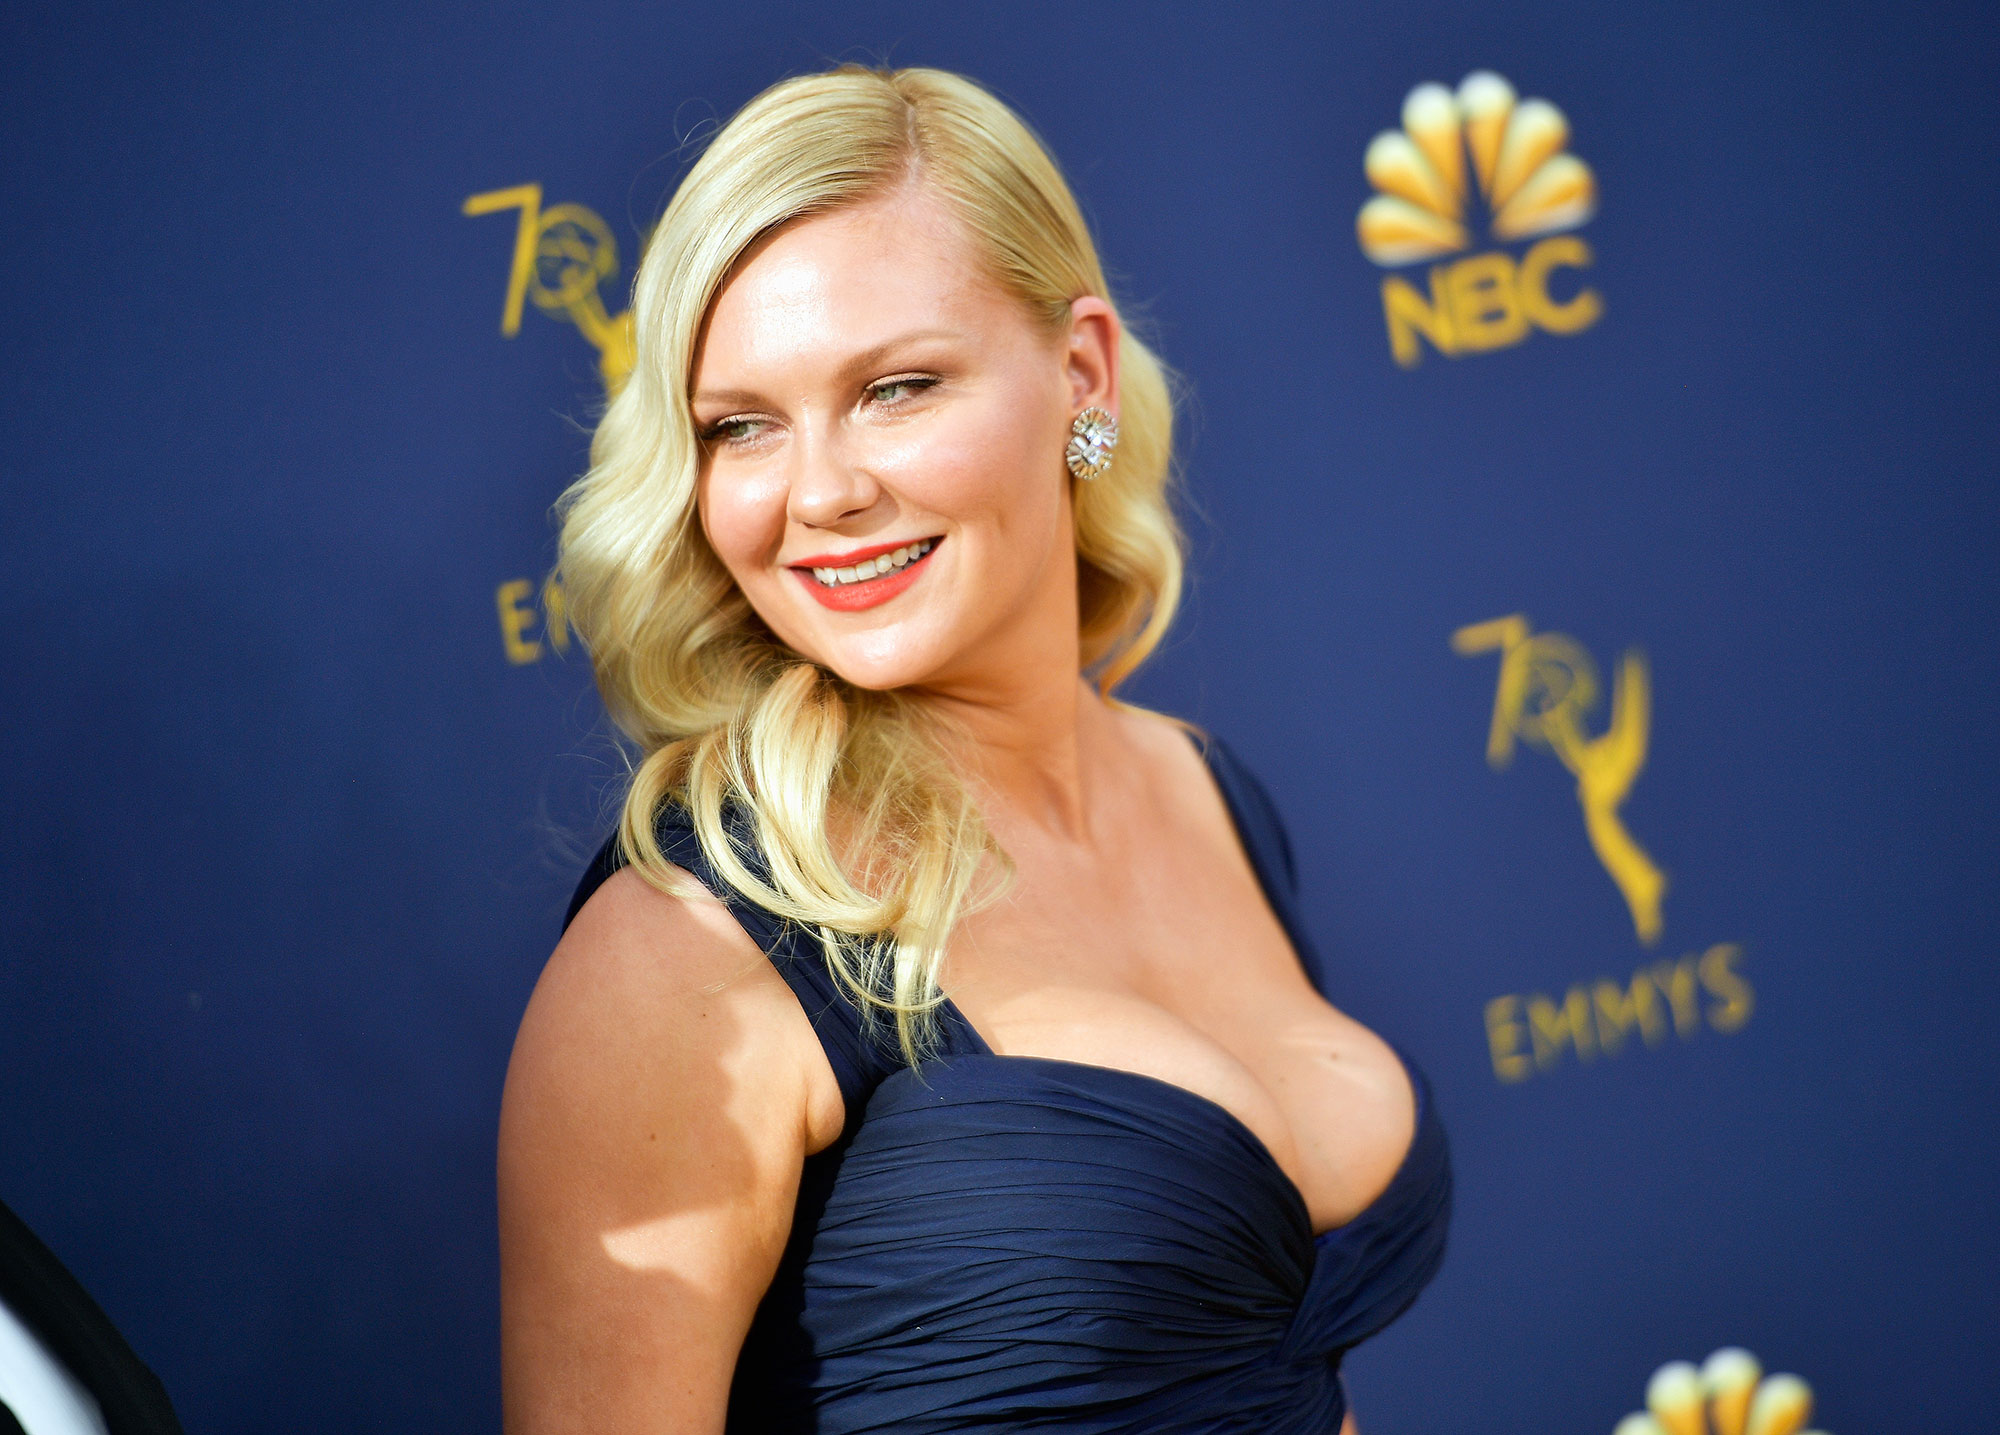 Foto Kirsten Dunst naked (38 photo), Pussy, Hot, Boobs, lingerie 2018